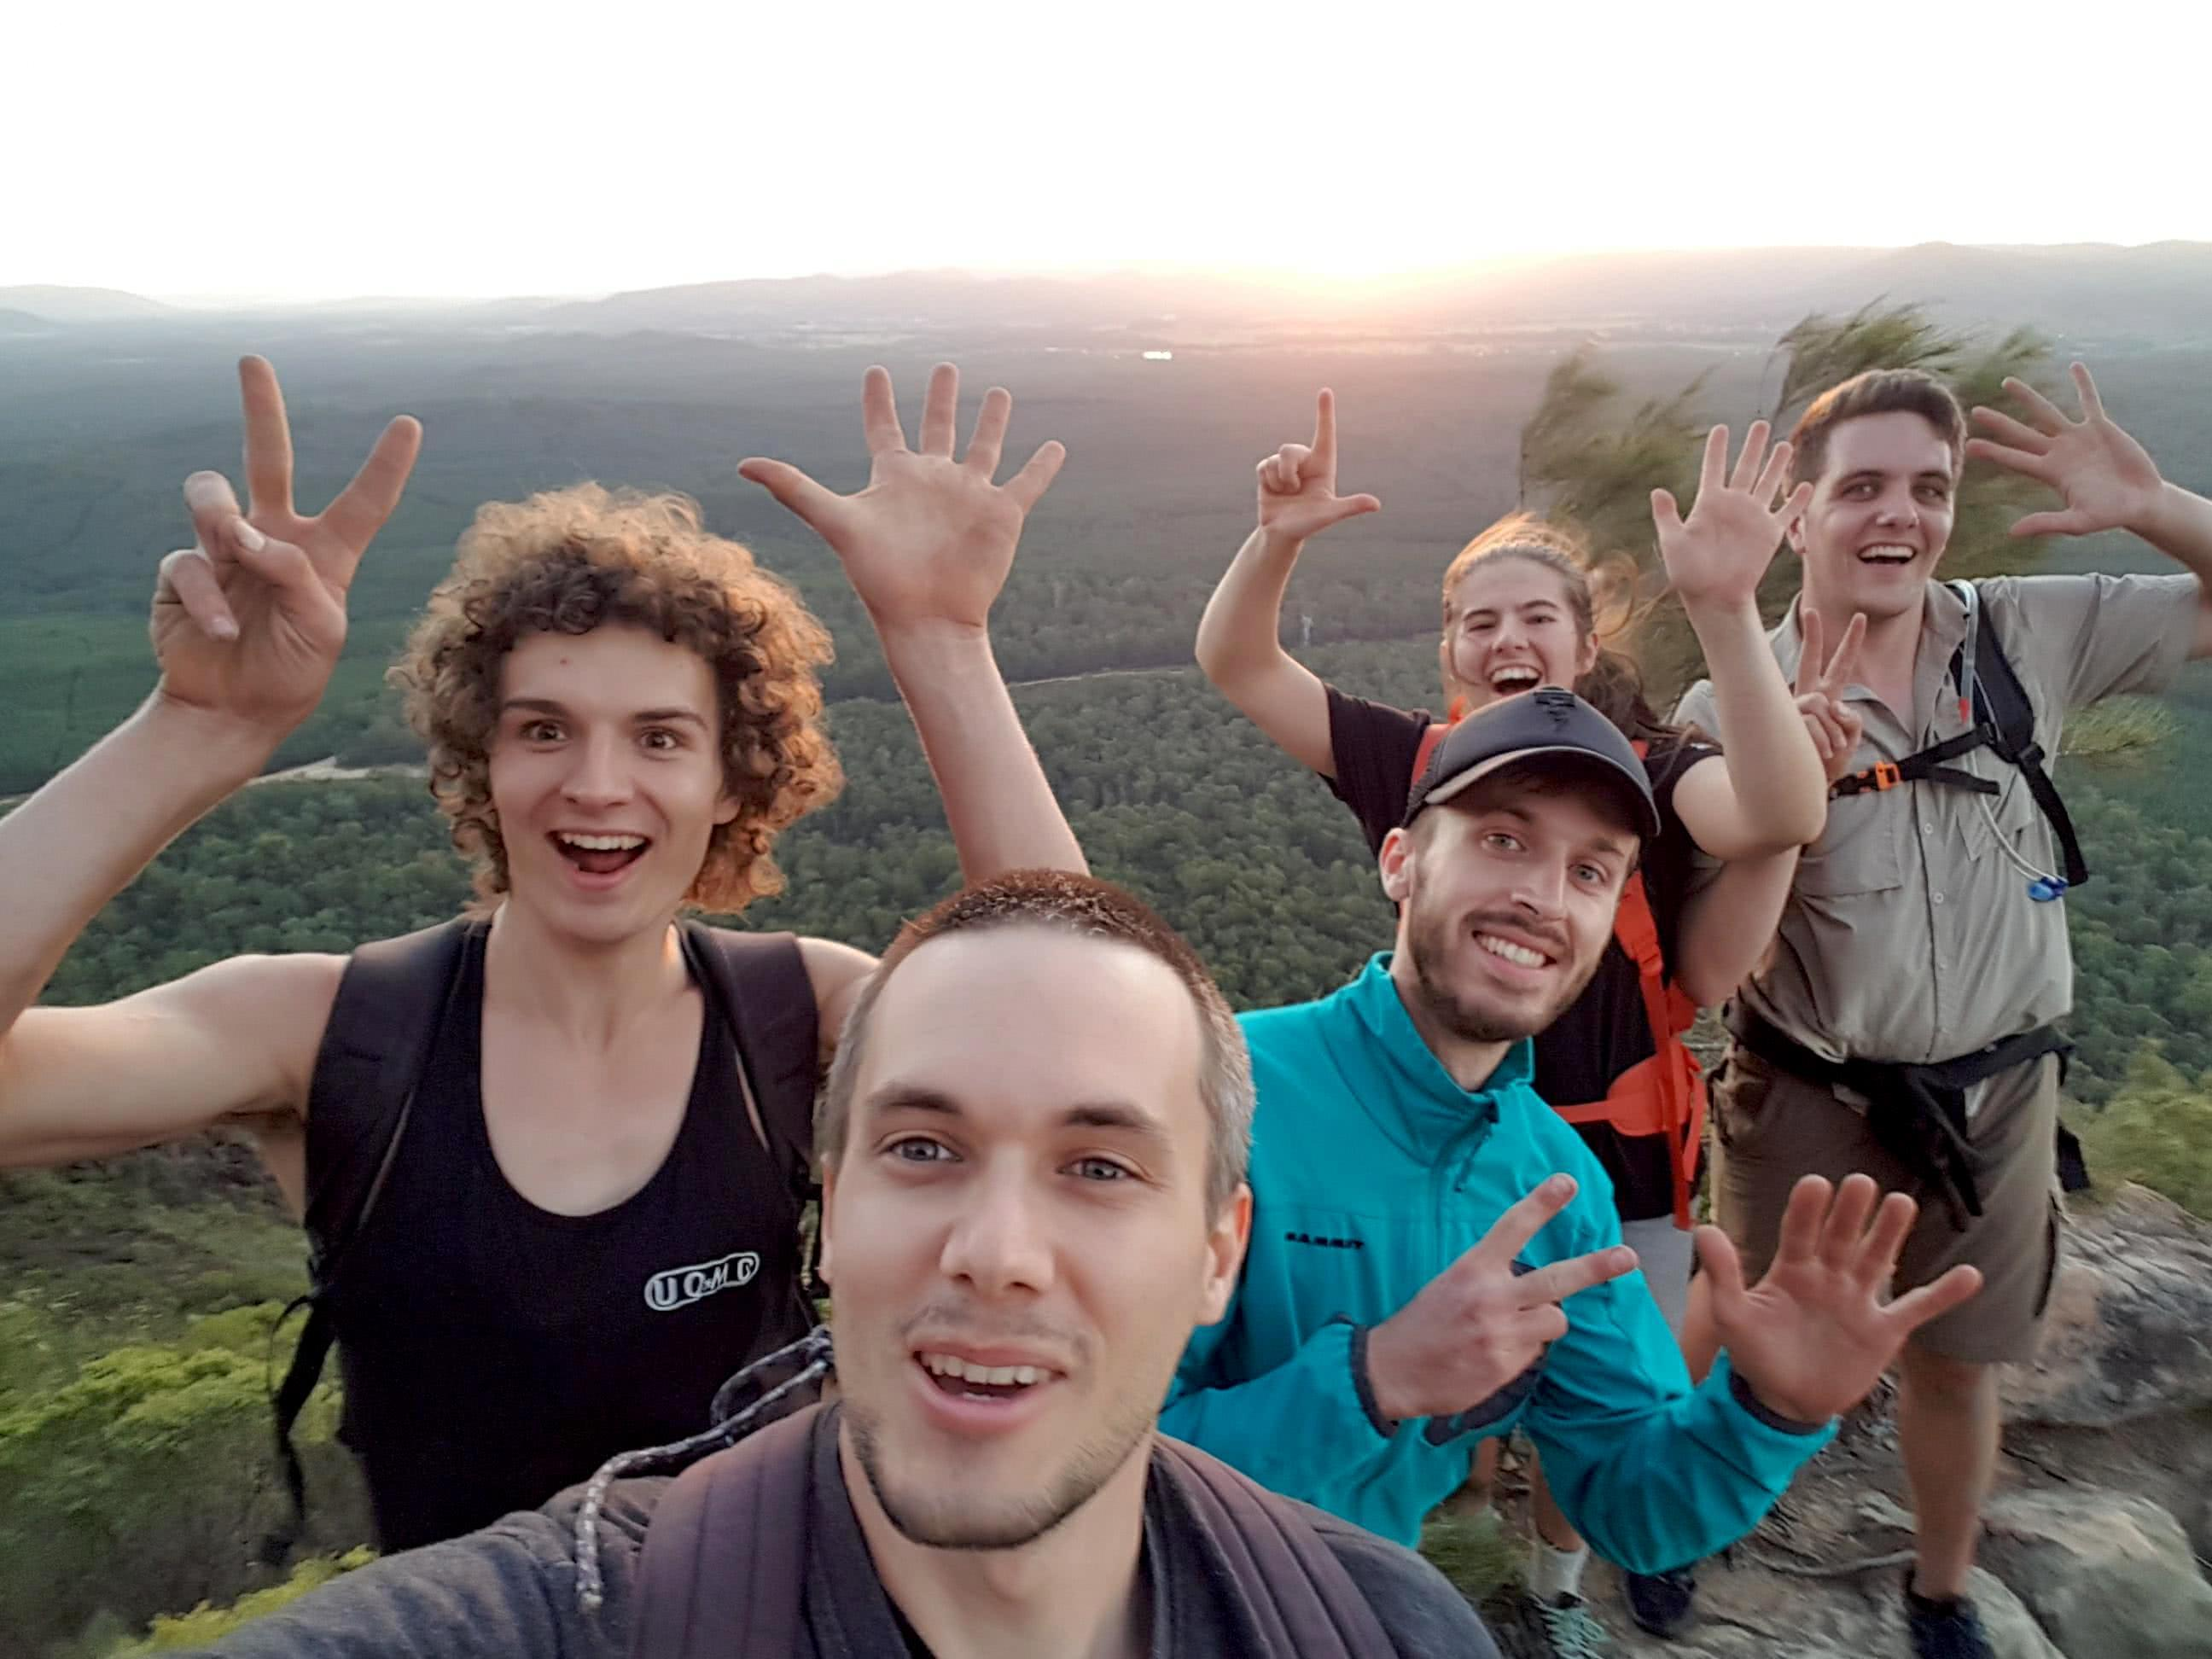 The 7 Peaks Challenge // Glass House Mountains, Nabari Yoite, South East Queensland, University of Queensland Mountain Club, climbing, sunset, cliff, 7 peaks! Sunset